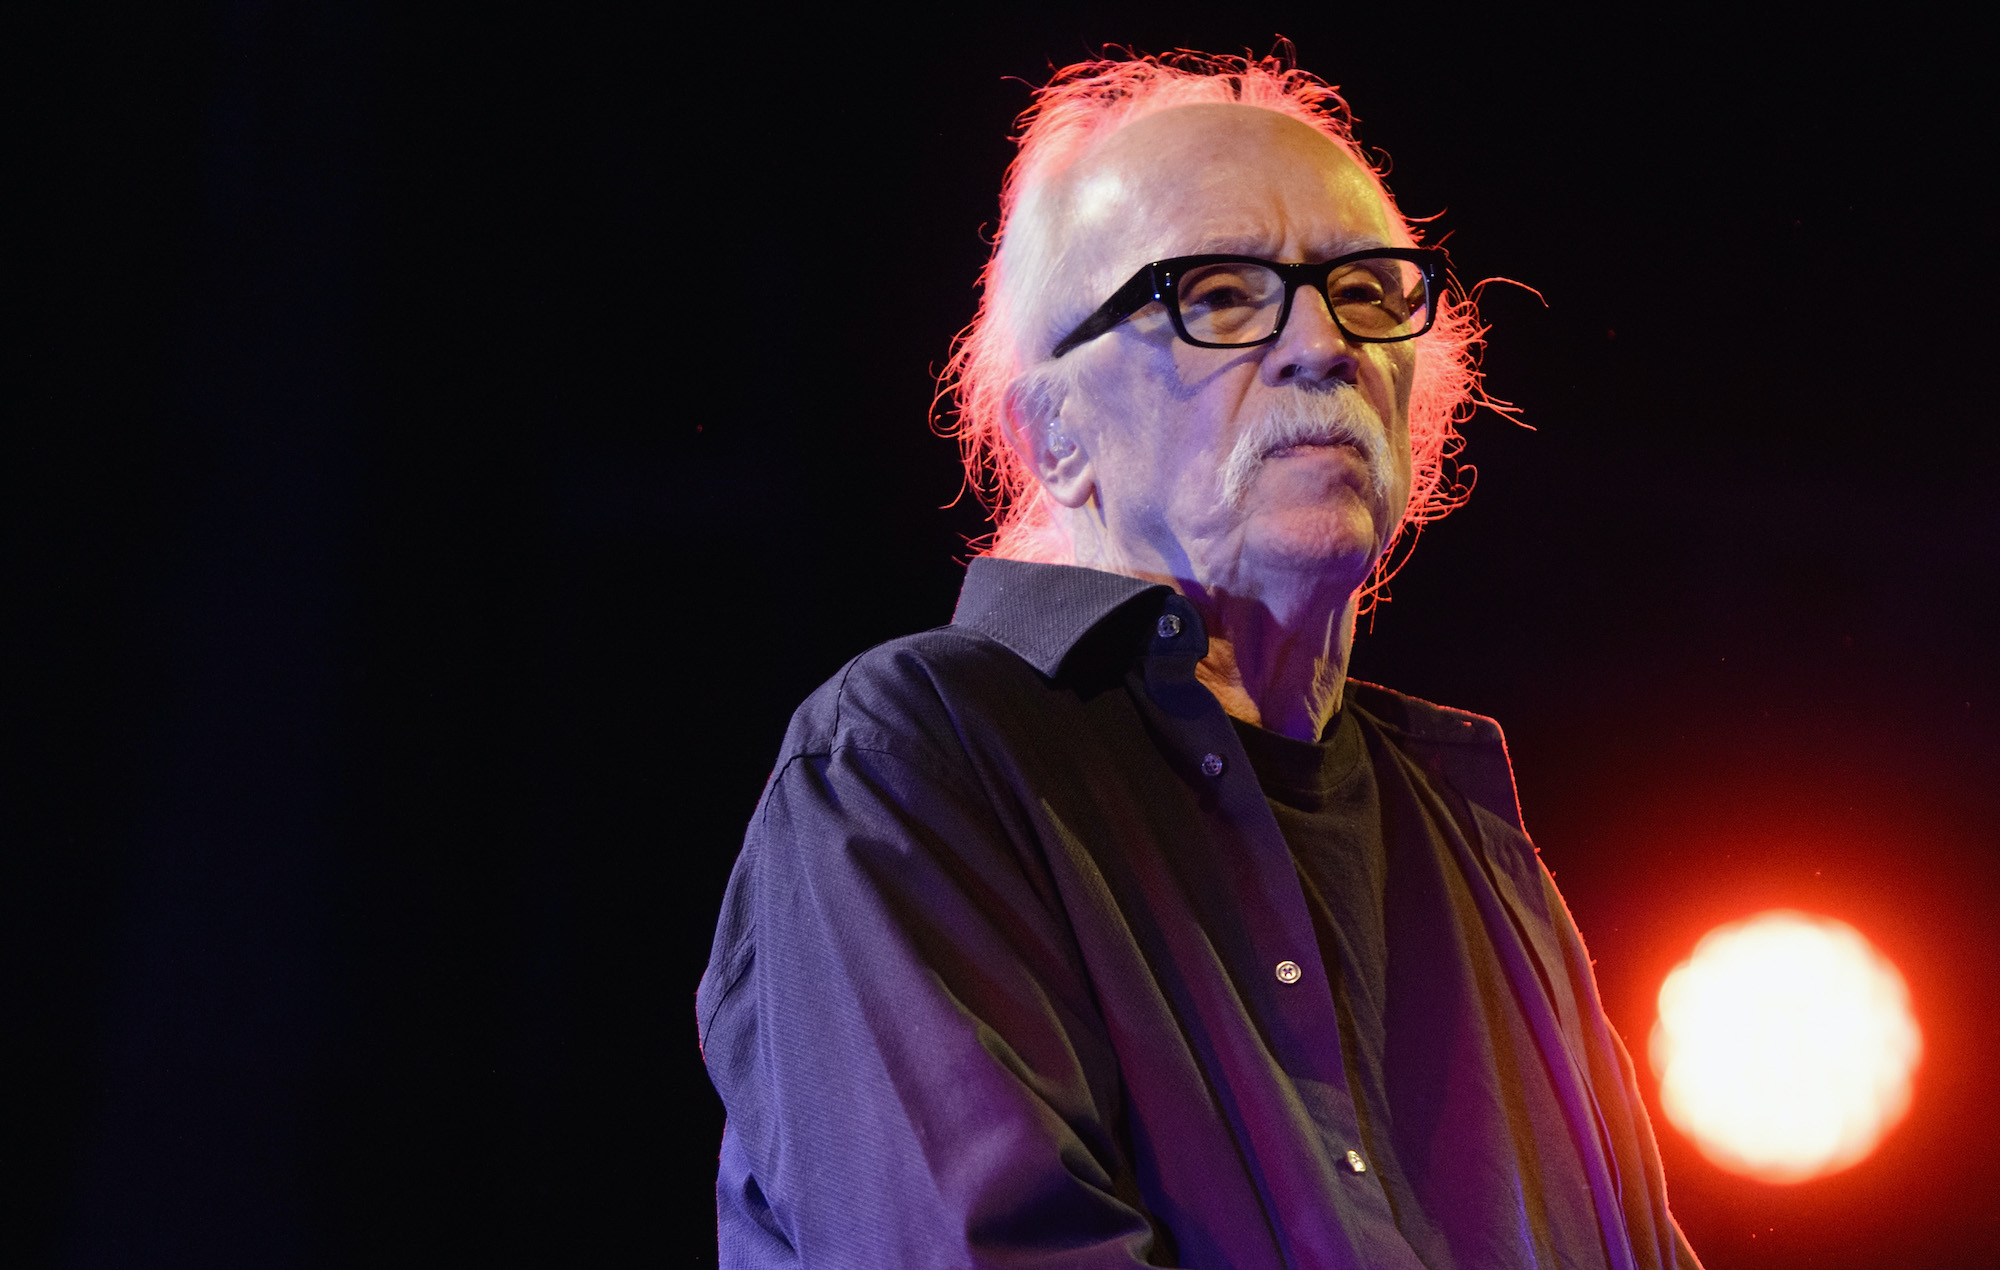 John Carpenter Halloween Score 2020 John Carpenter shares two new non soundtrack songs, 'Skeleton' and